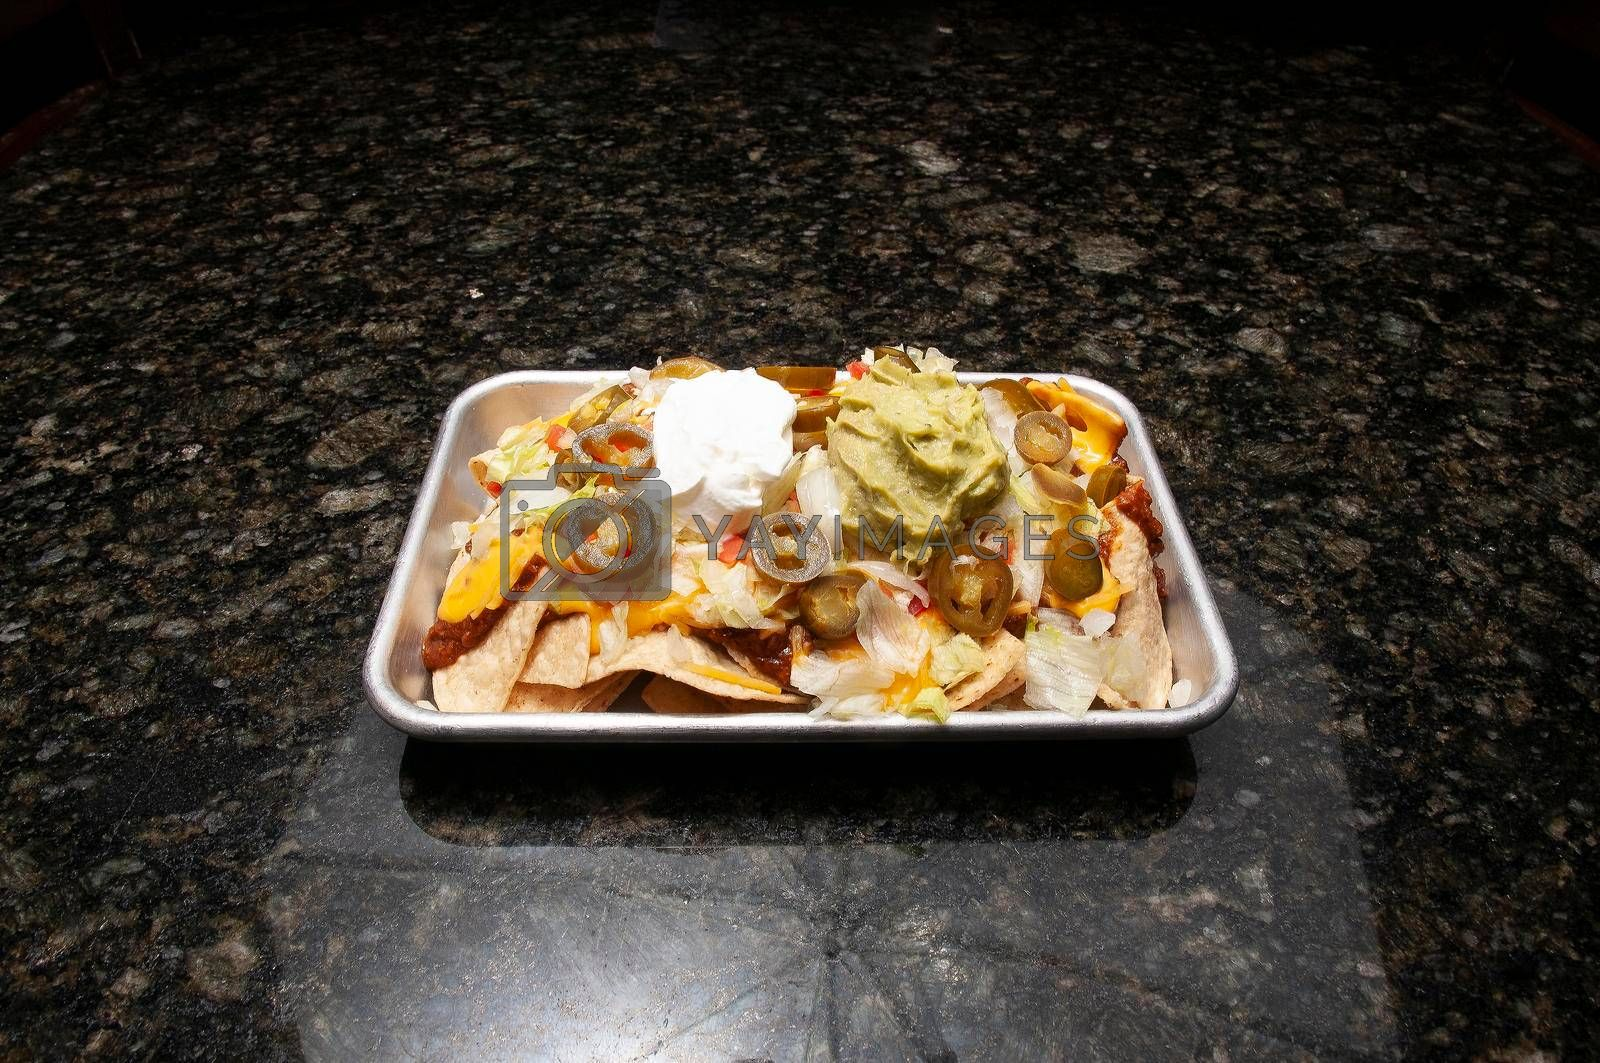 Delicious and authentic Mexican cuisine known as nachos